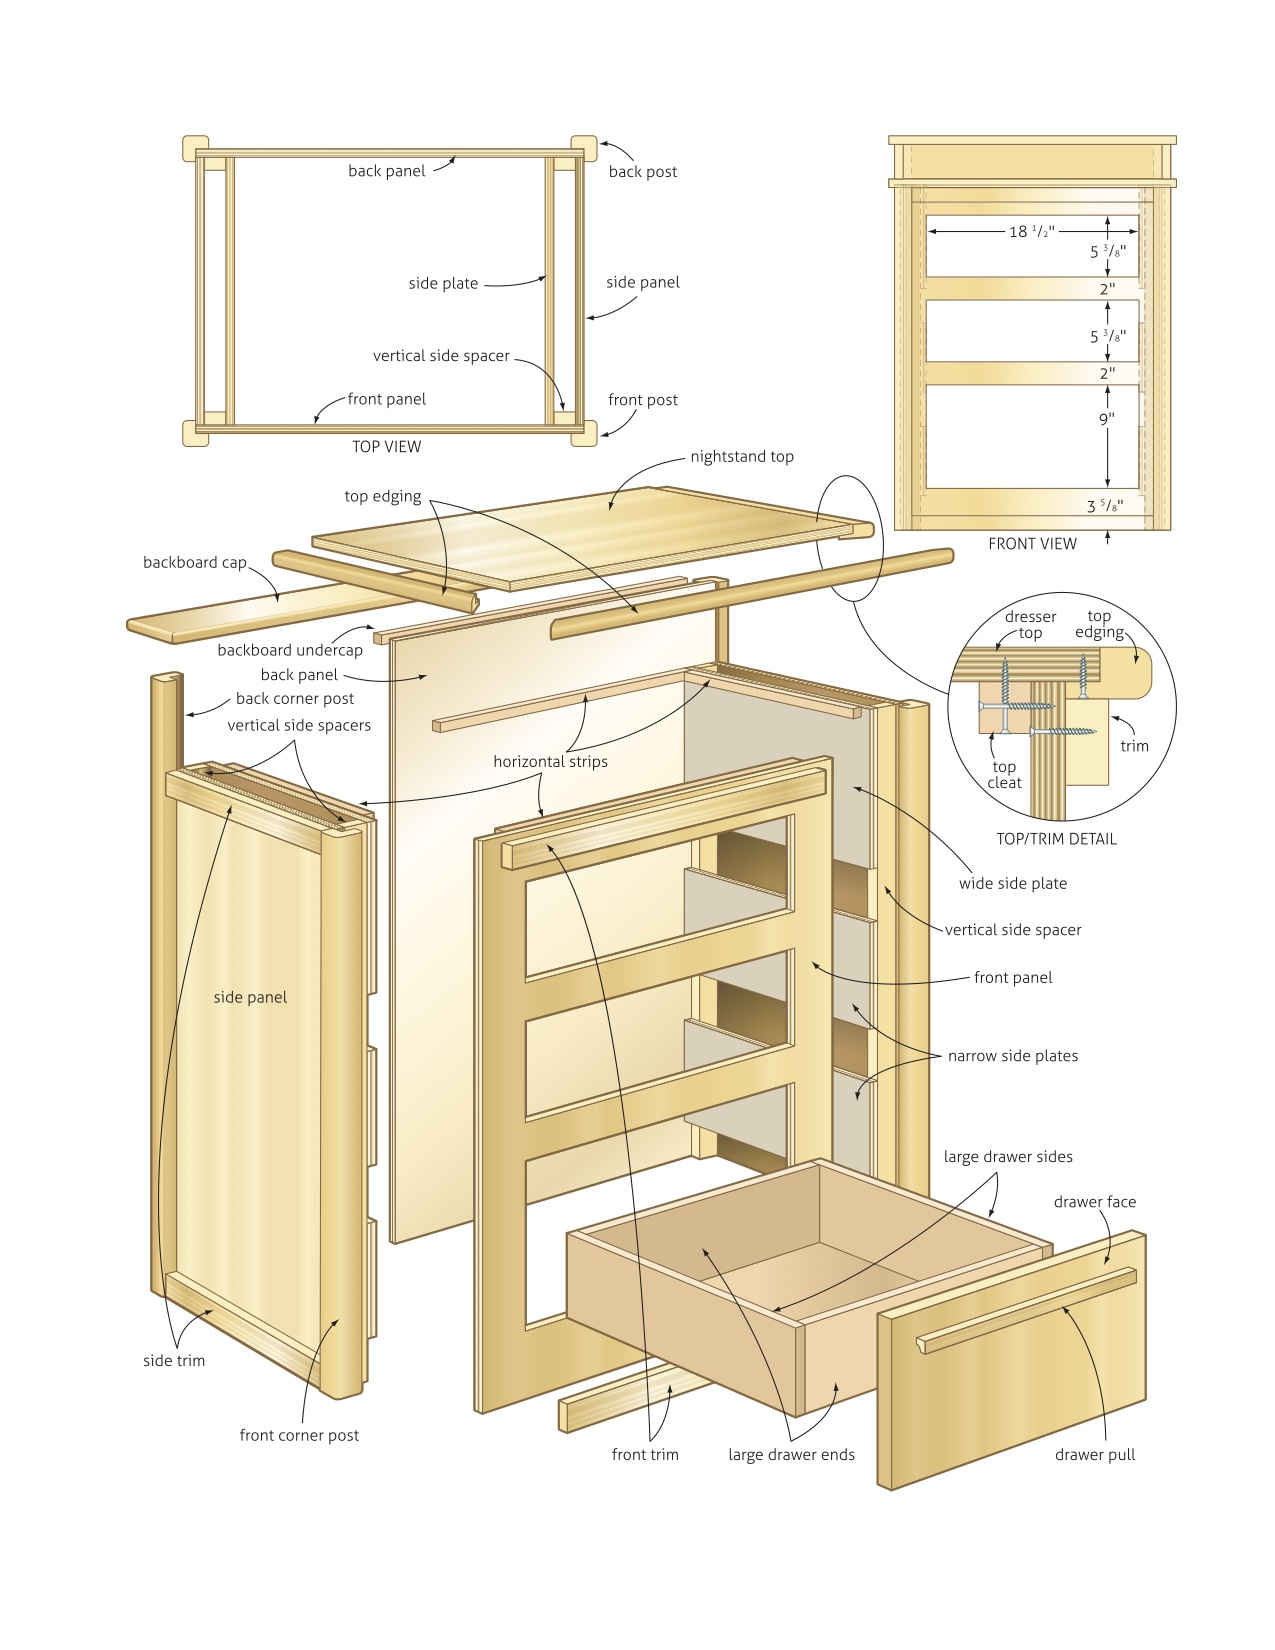 3d Bathroom Design Tool Nightstand With Storage Woodworking Plans Woodshop Plans